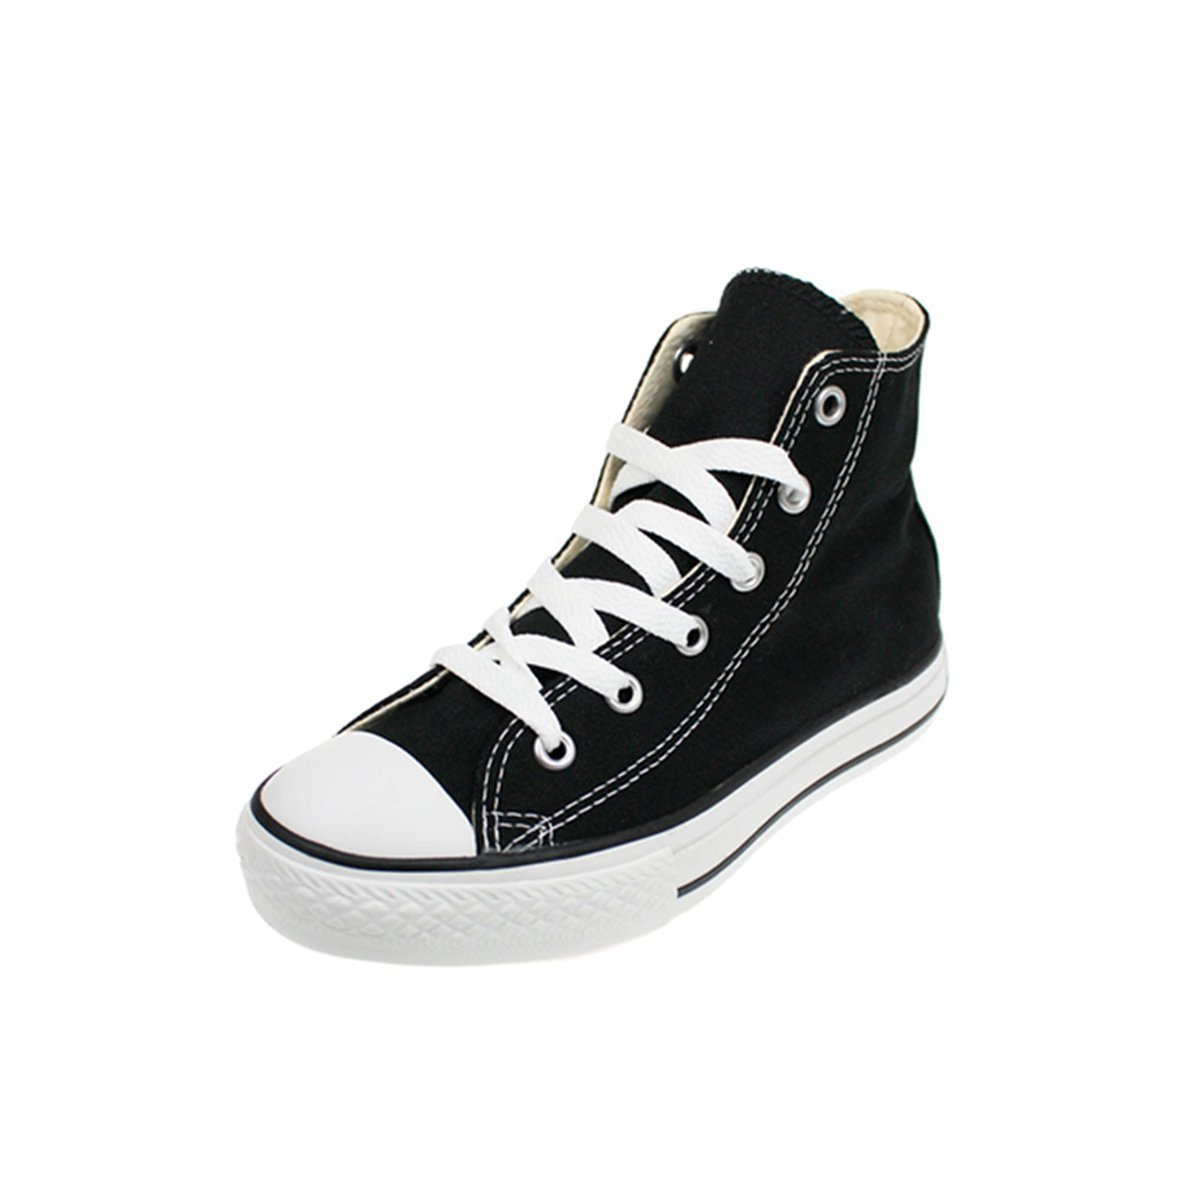 Converse All Star Chuck Taylor Kids Classic Black Canvas High Top Trainers - UK 11